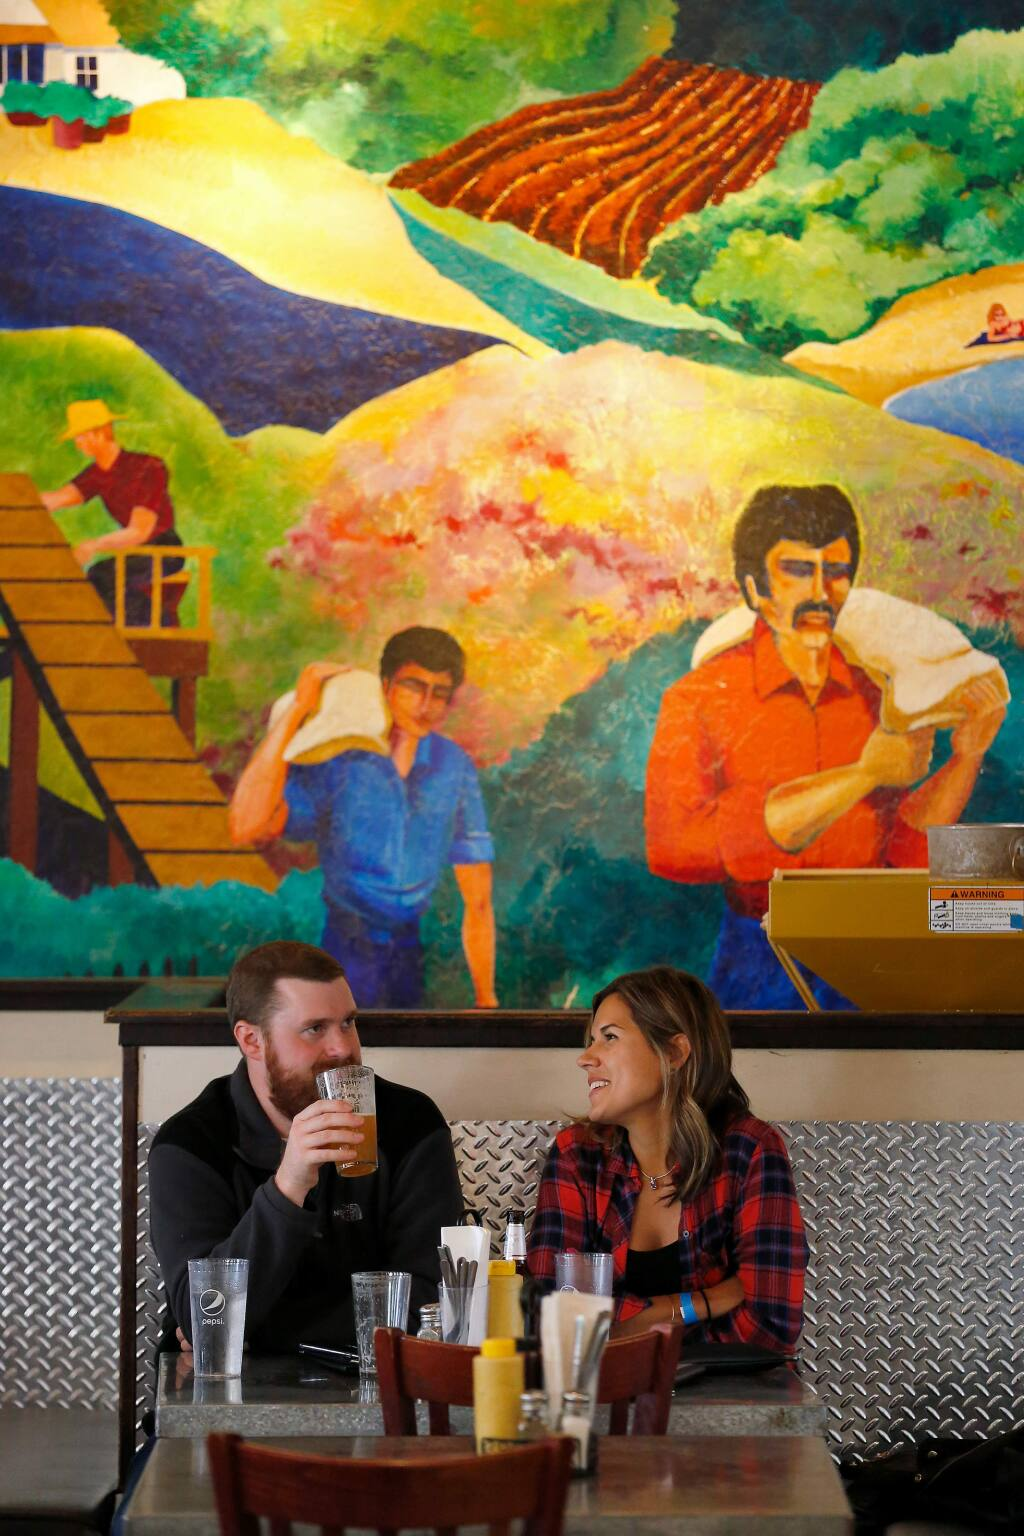 Noah Schmidt and Emily McClelland of Santa Rosa enjoy some drinks at Bear Republic Brewing Company's taproom in Healdsburg, California, on Saturday, October 19, 2019. Bear Republic Brewing Company recently announced the closing of their original brewpub in Healdsburg, after 25 years of operation. (Alvin Jornada / The Press Democrat)